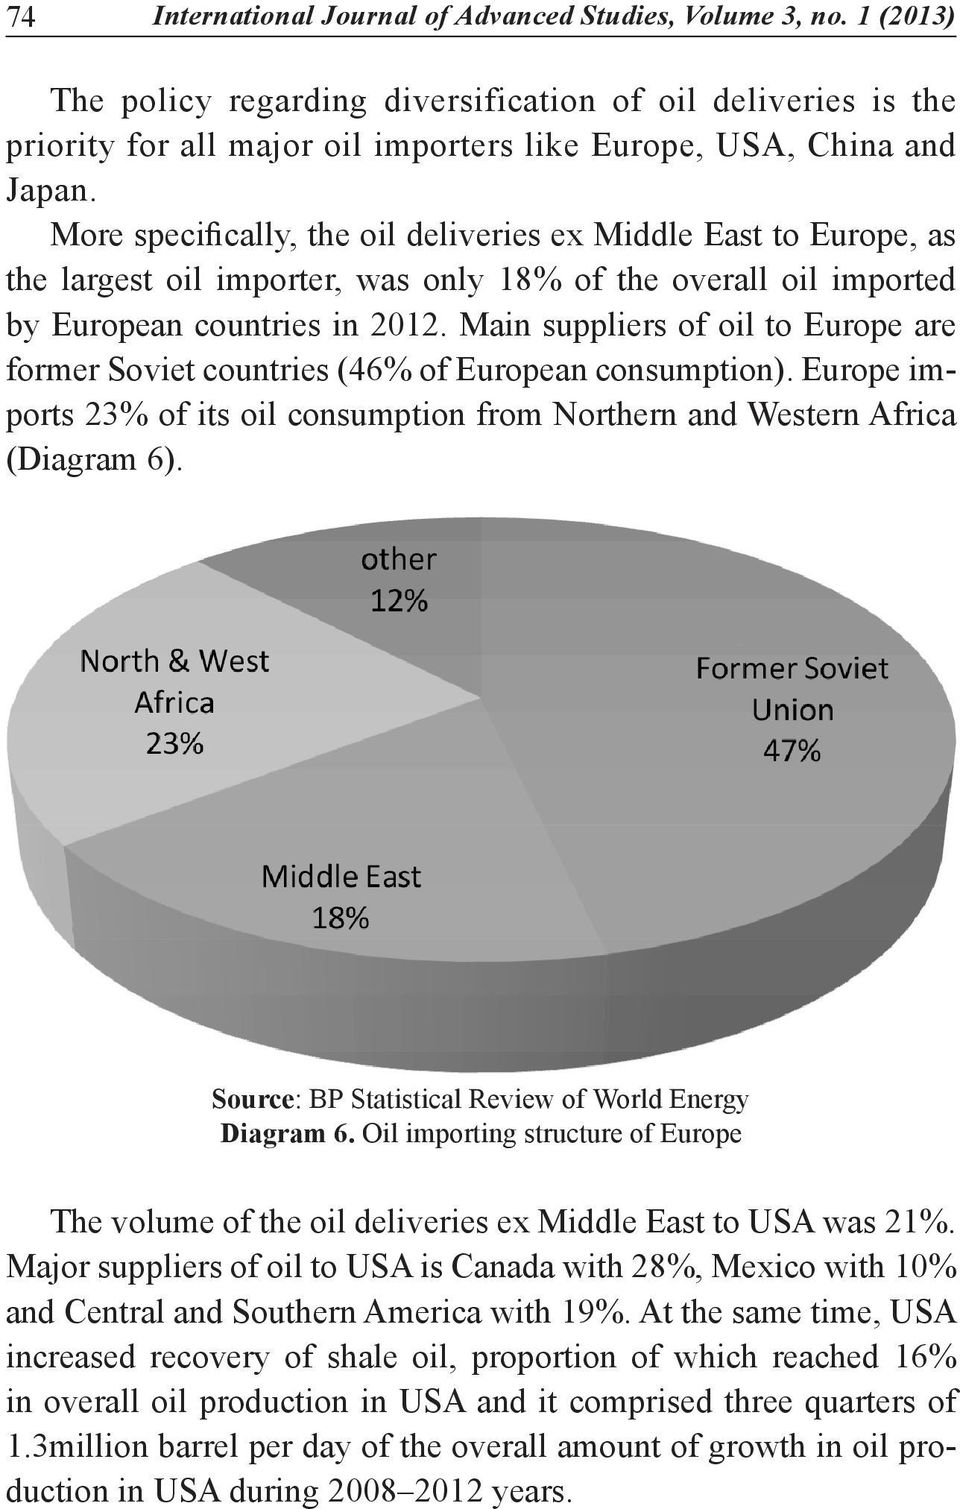 Main suppliers of oil to Europe are former Soviet countries (46% of European consumption). Europe imports 23% of its oil consumption from Northern and Western Africa (Diagram 6).